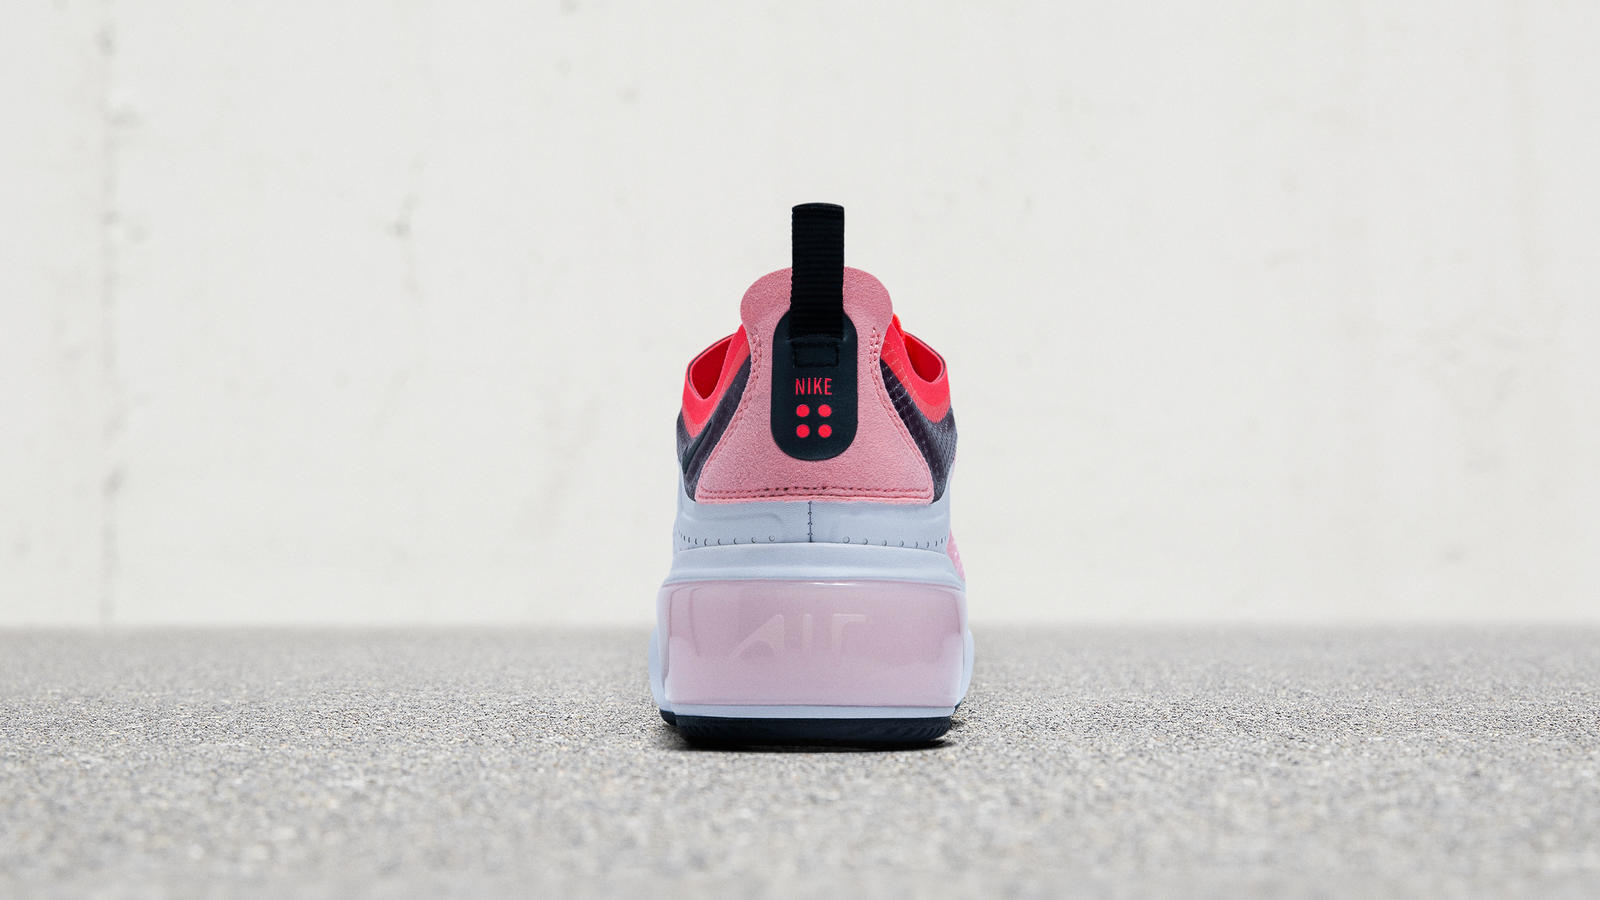 172619a793 It's the Biggest Nike Air Bag Yet in a Women's-Only Shoe 1